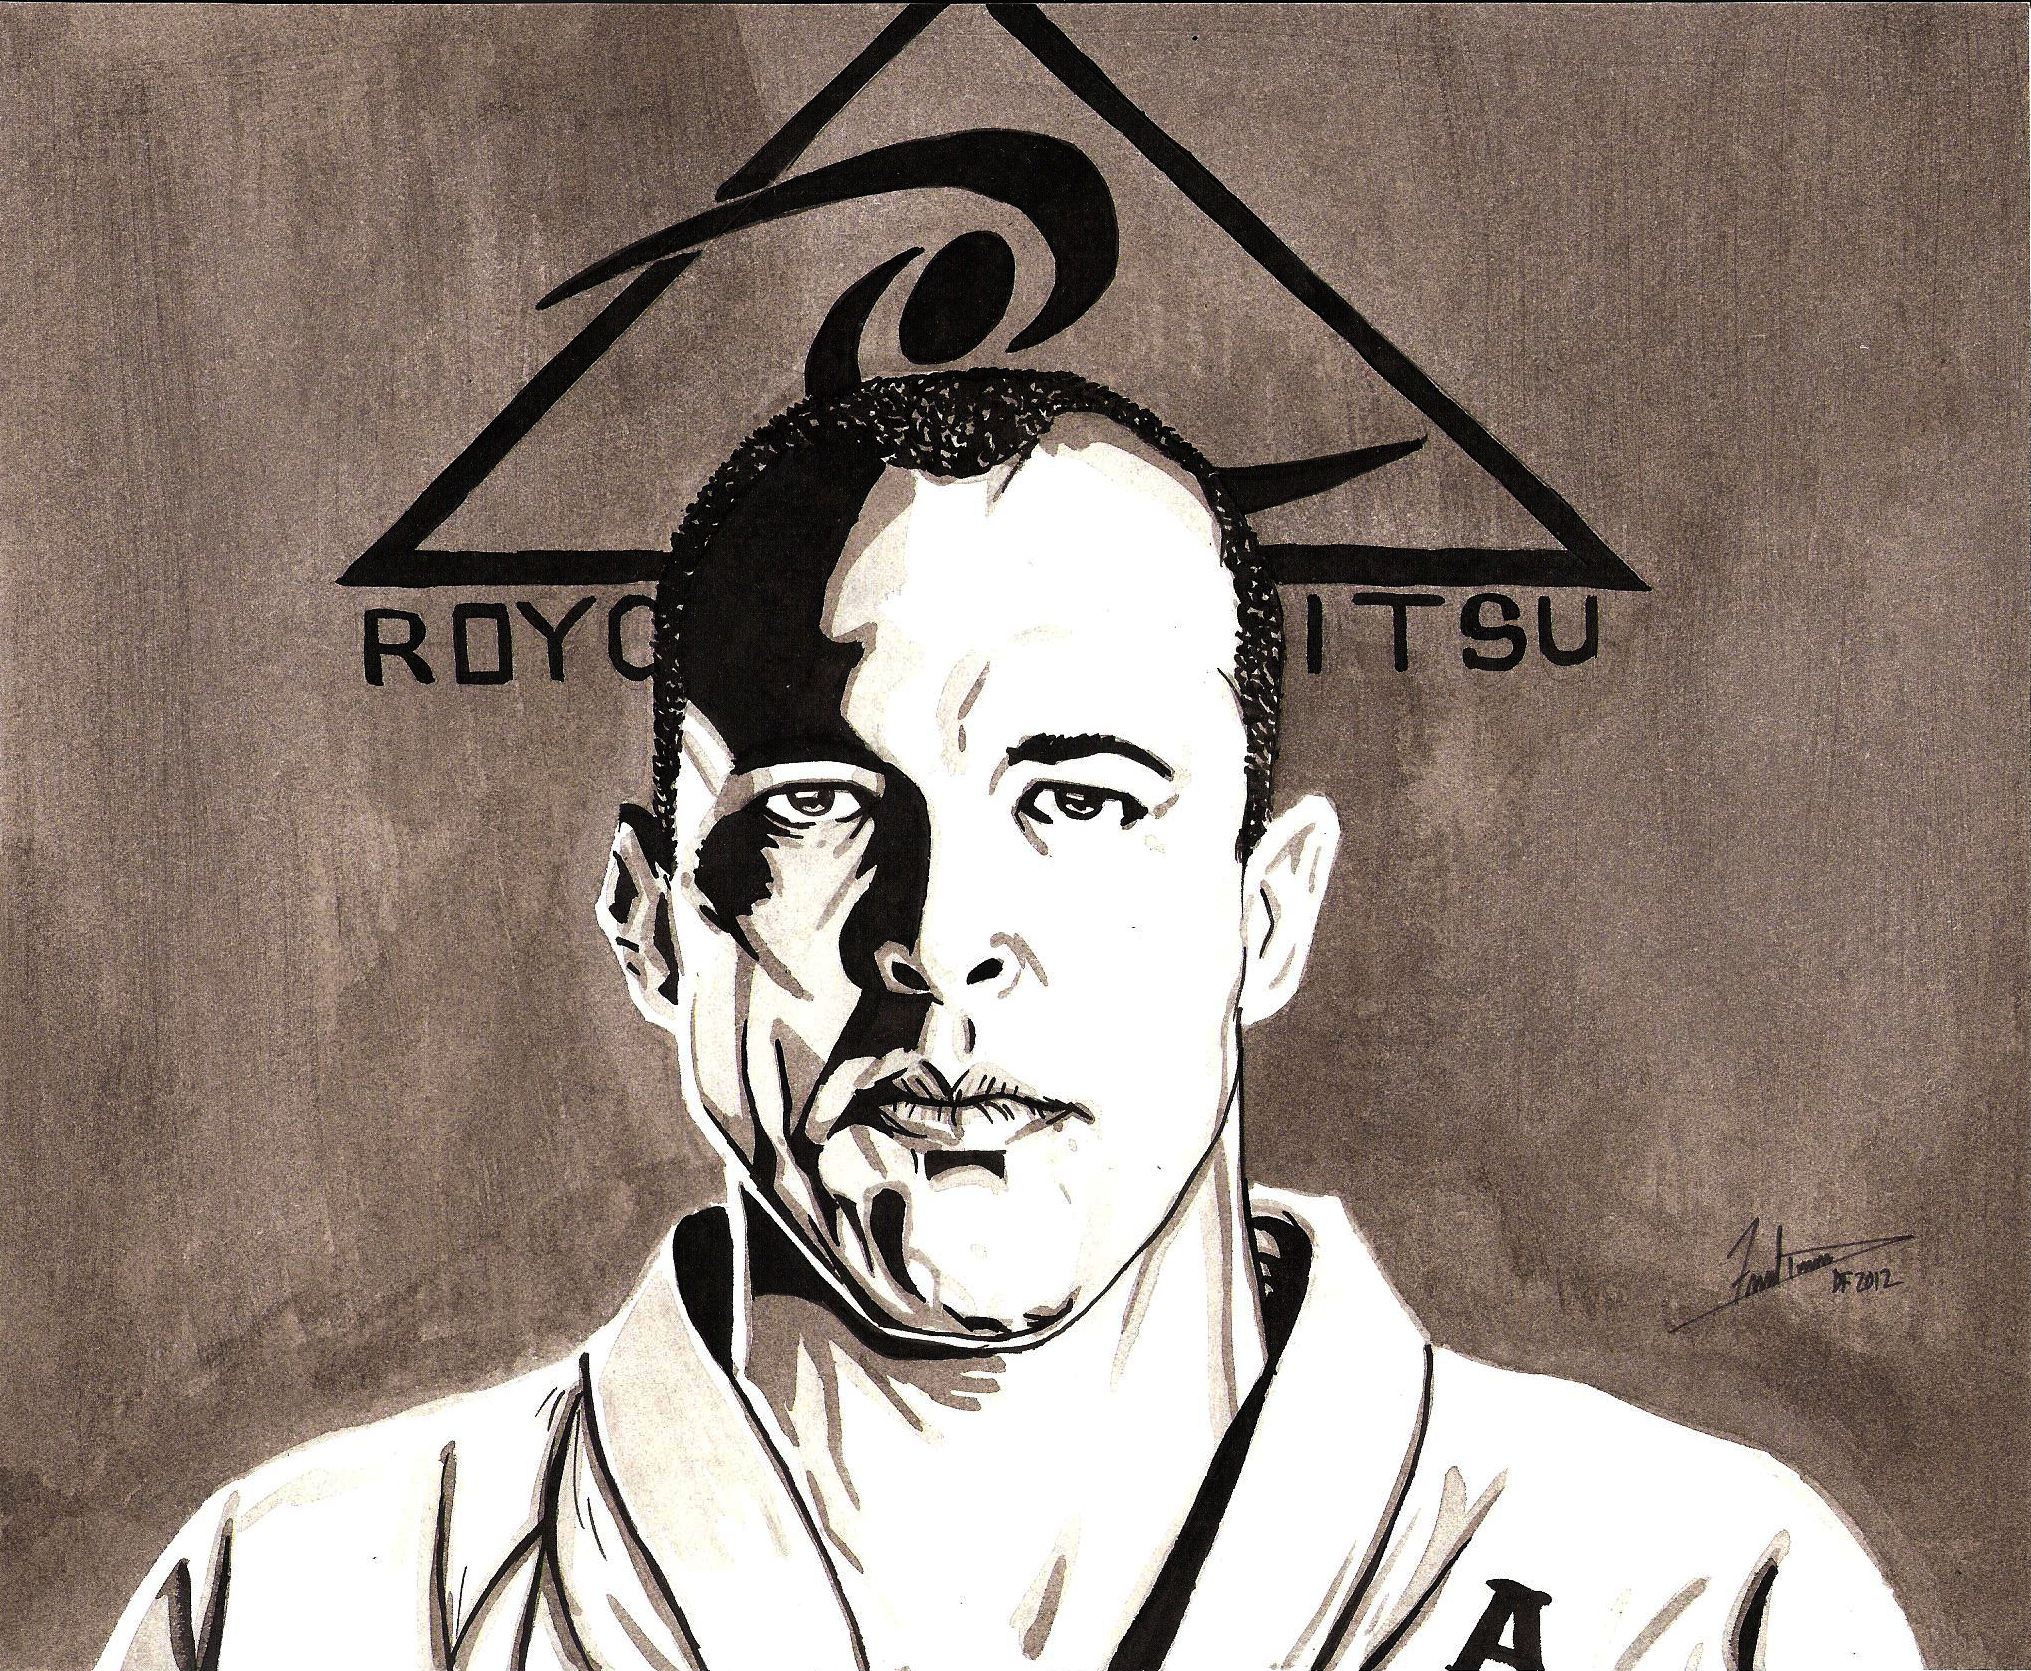 Ink Painting Royce Gracie By Dredfunn On Deviantart